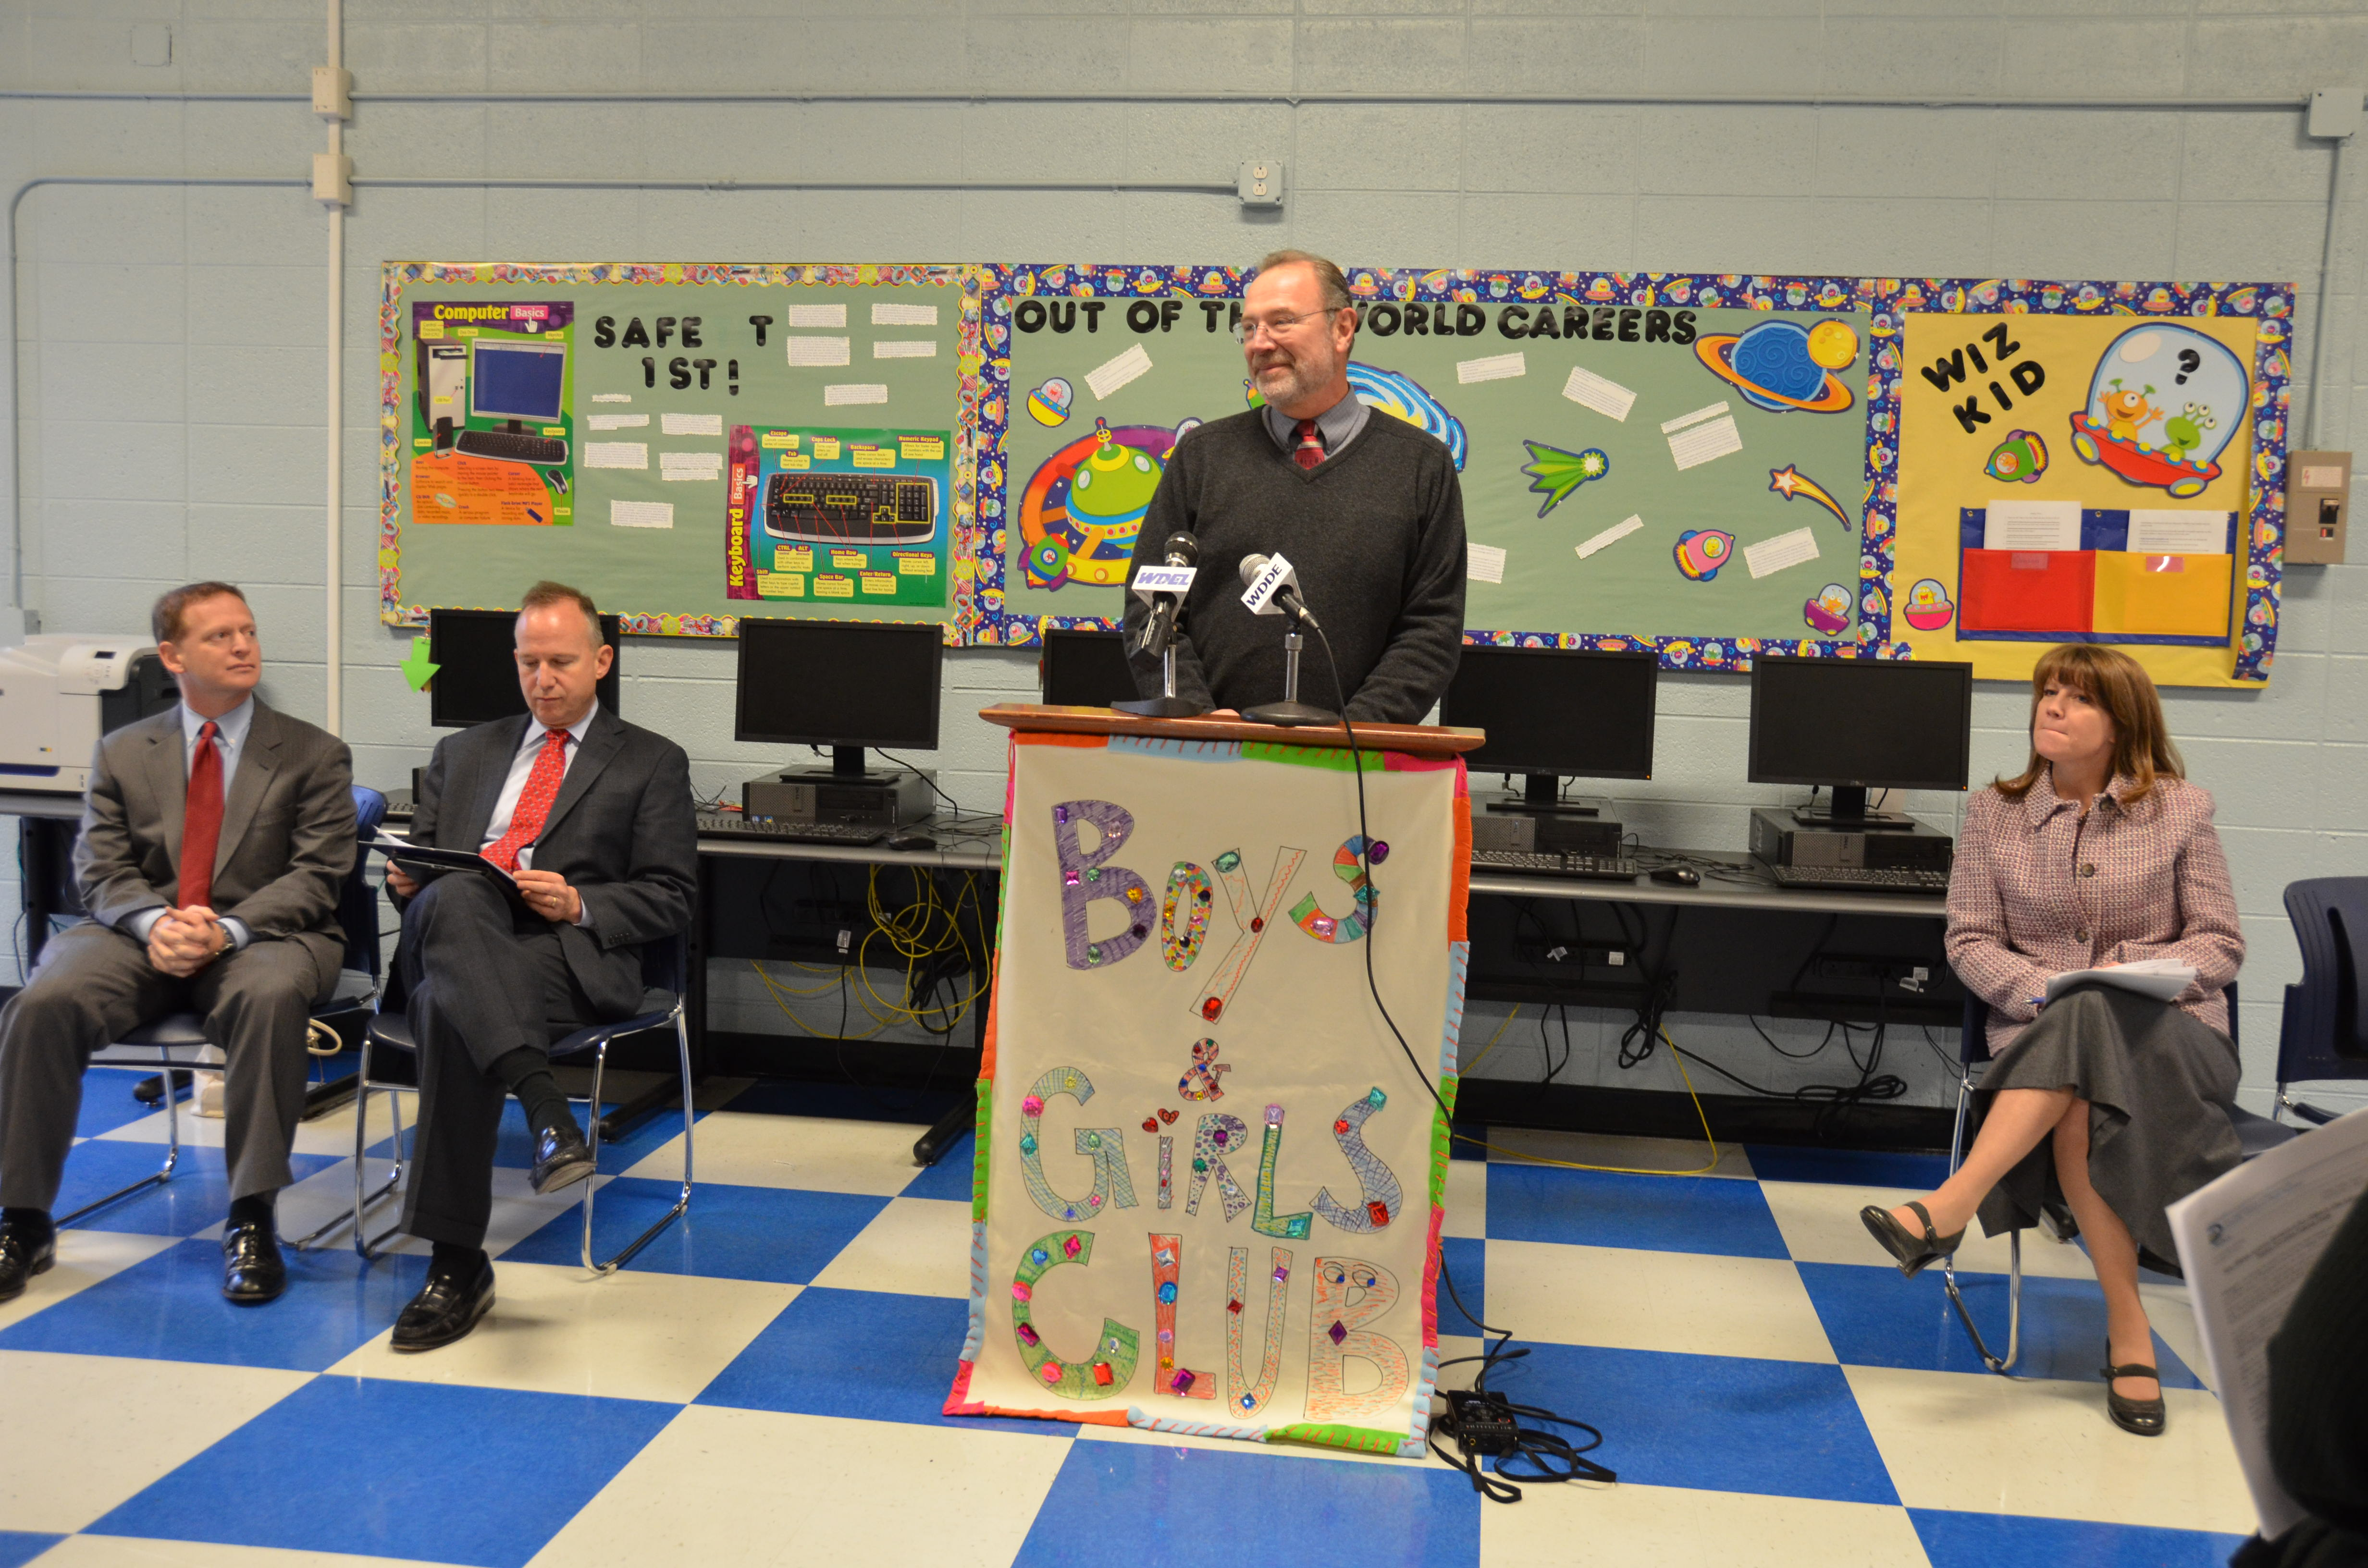 Speakers for after school funding announcement